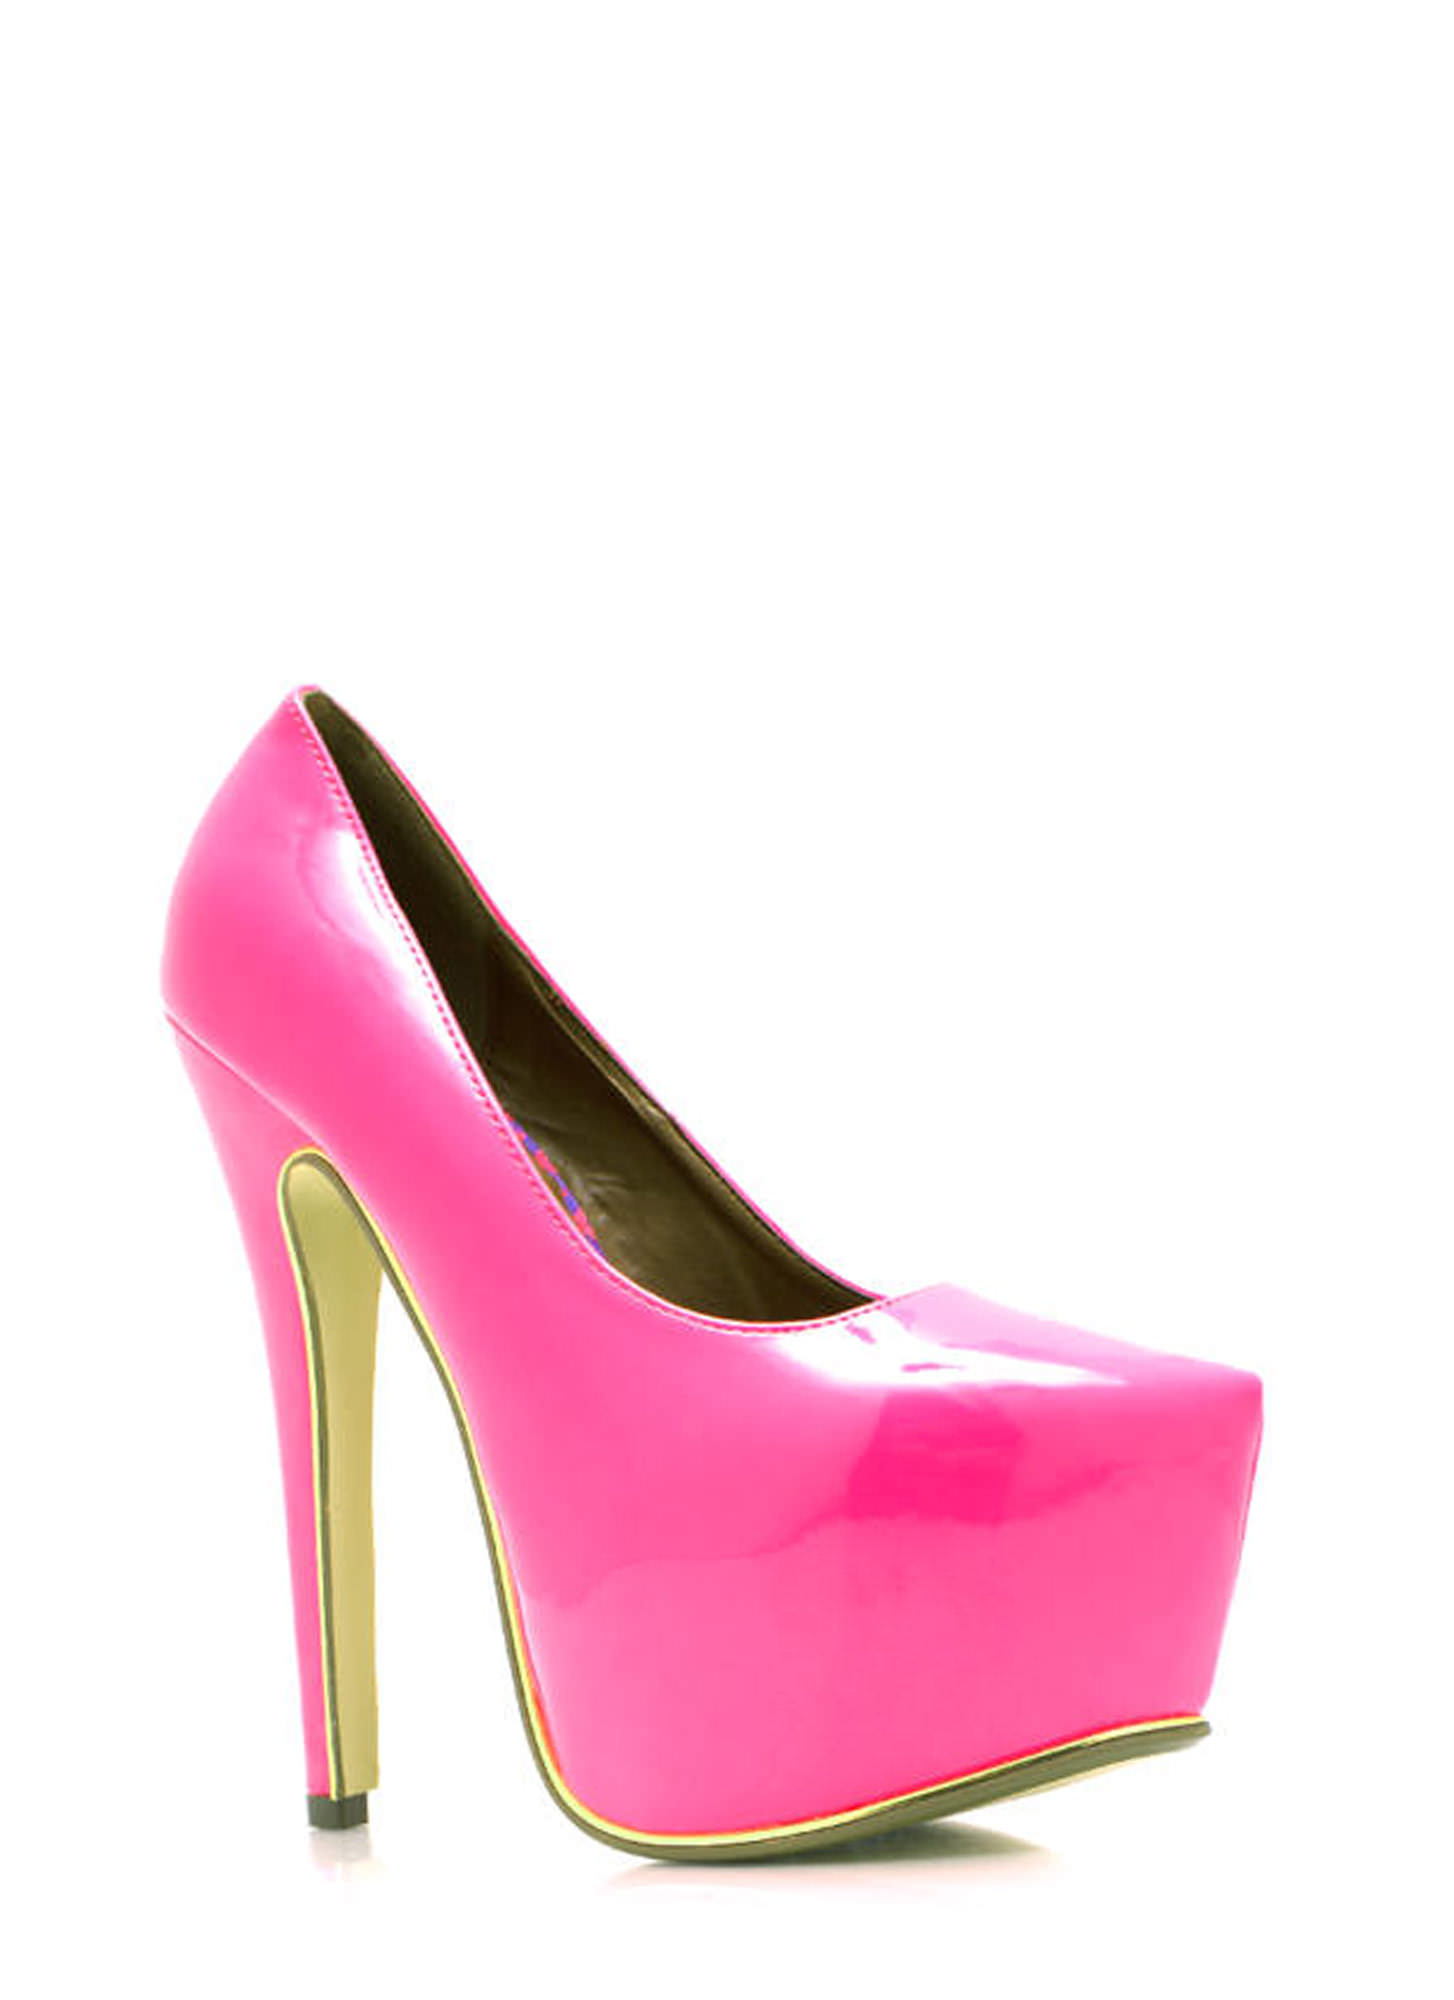 On The Edge Platform Pumps PINK (Final Sale)